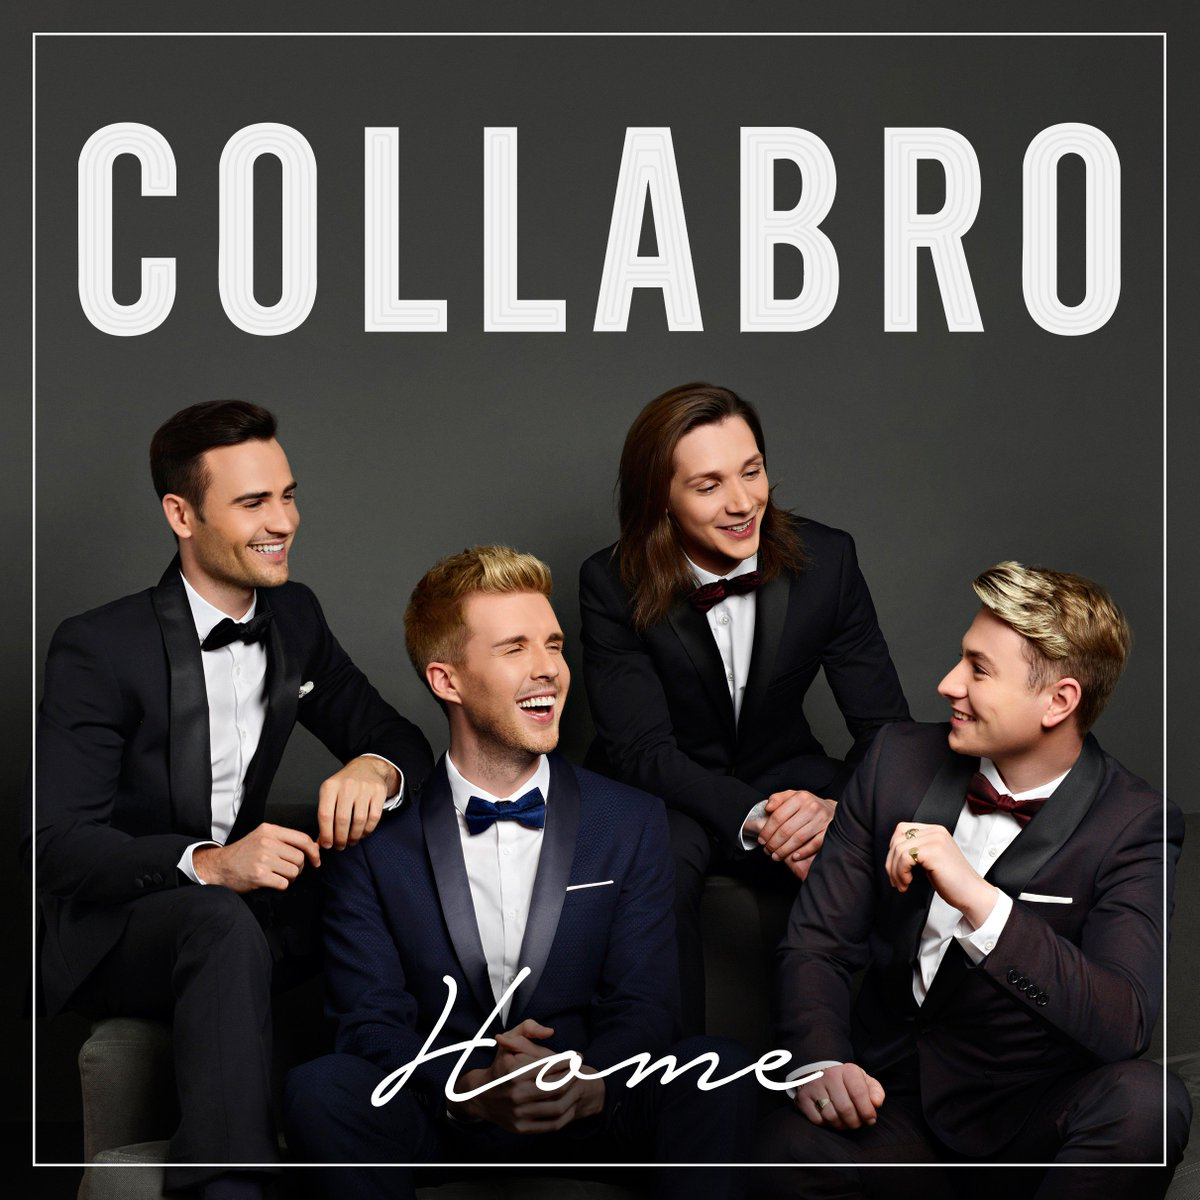 Who wants a big #CollabroHome announcement at 7pm? RT if you do!